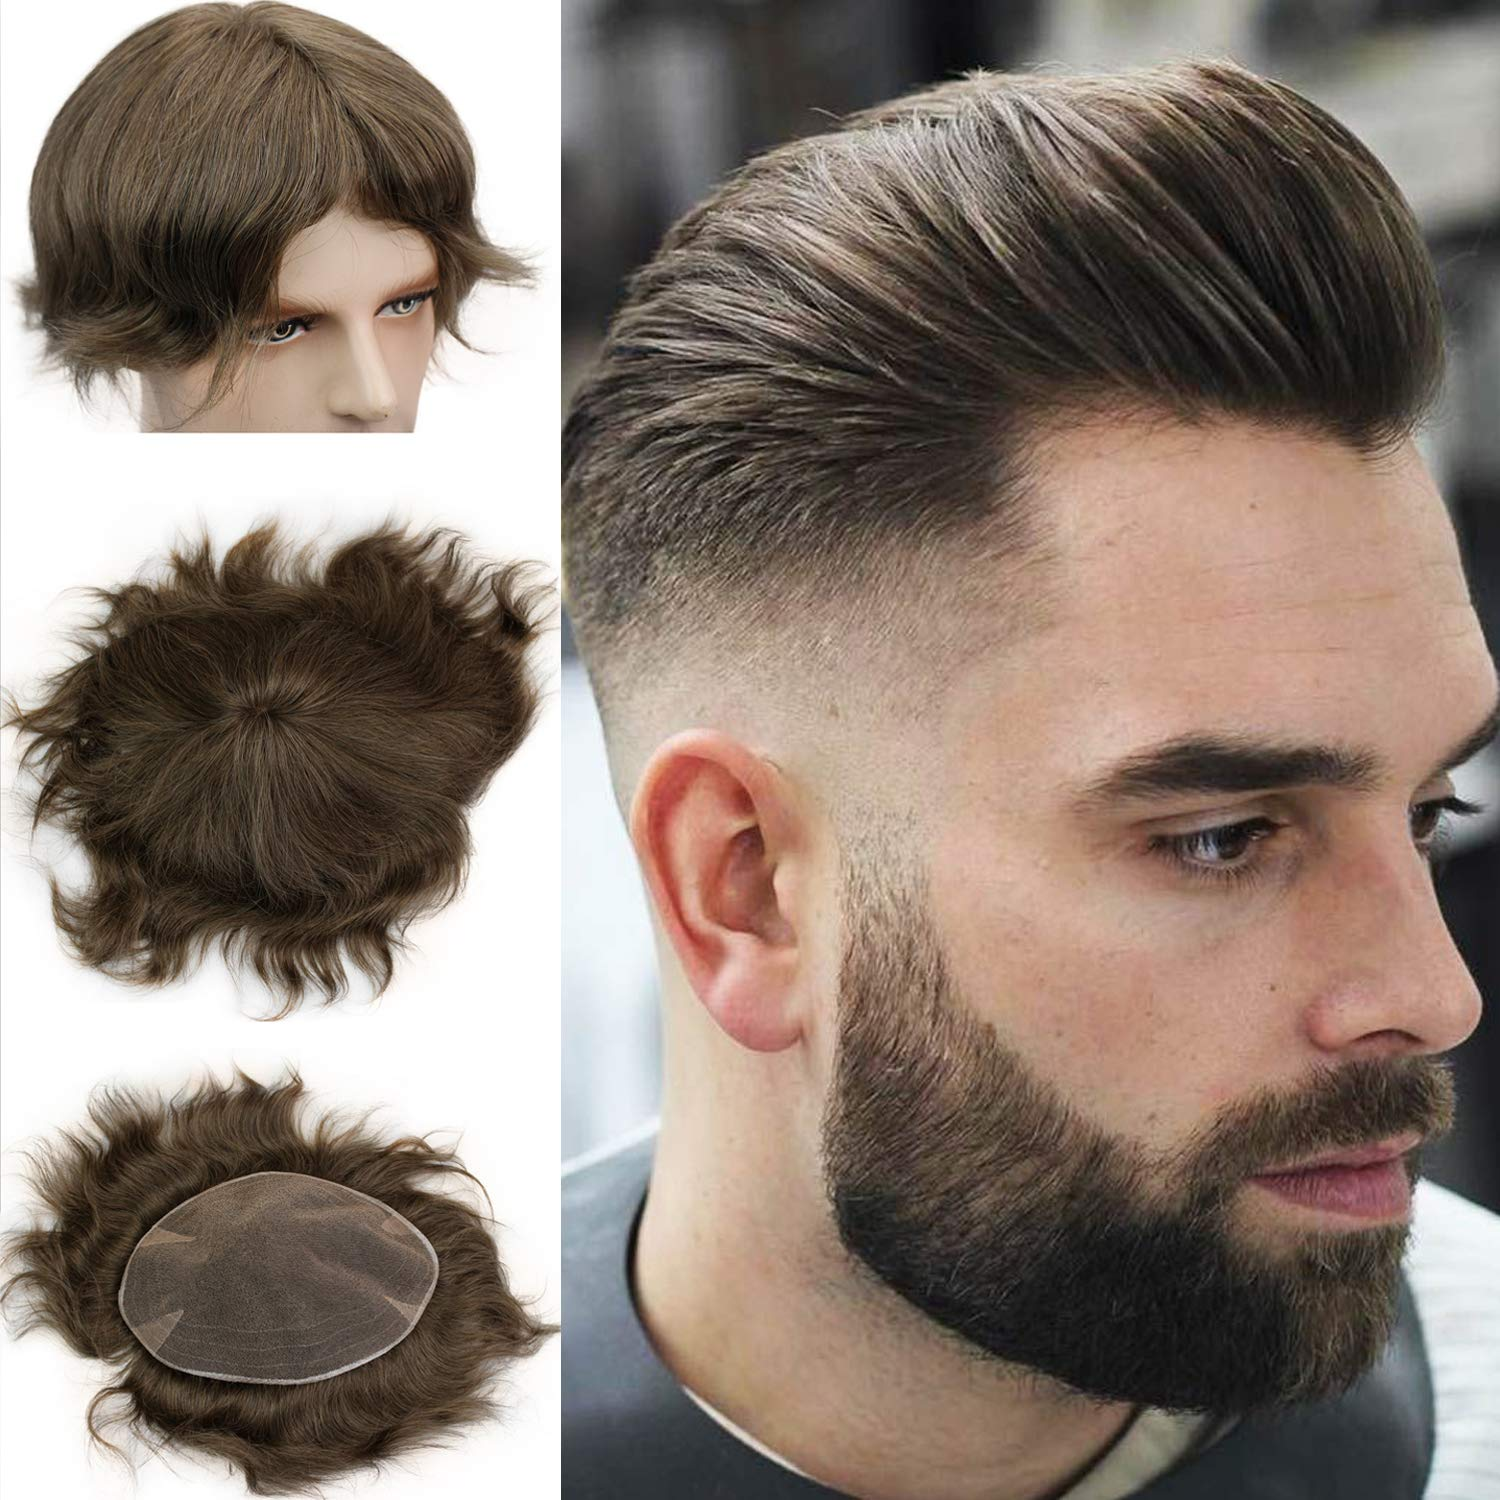 Swiss Full Lace Men's Toupee European Real Human Hair Replacement For Men Hairpiece #7 Brown Color 10X8